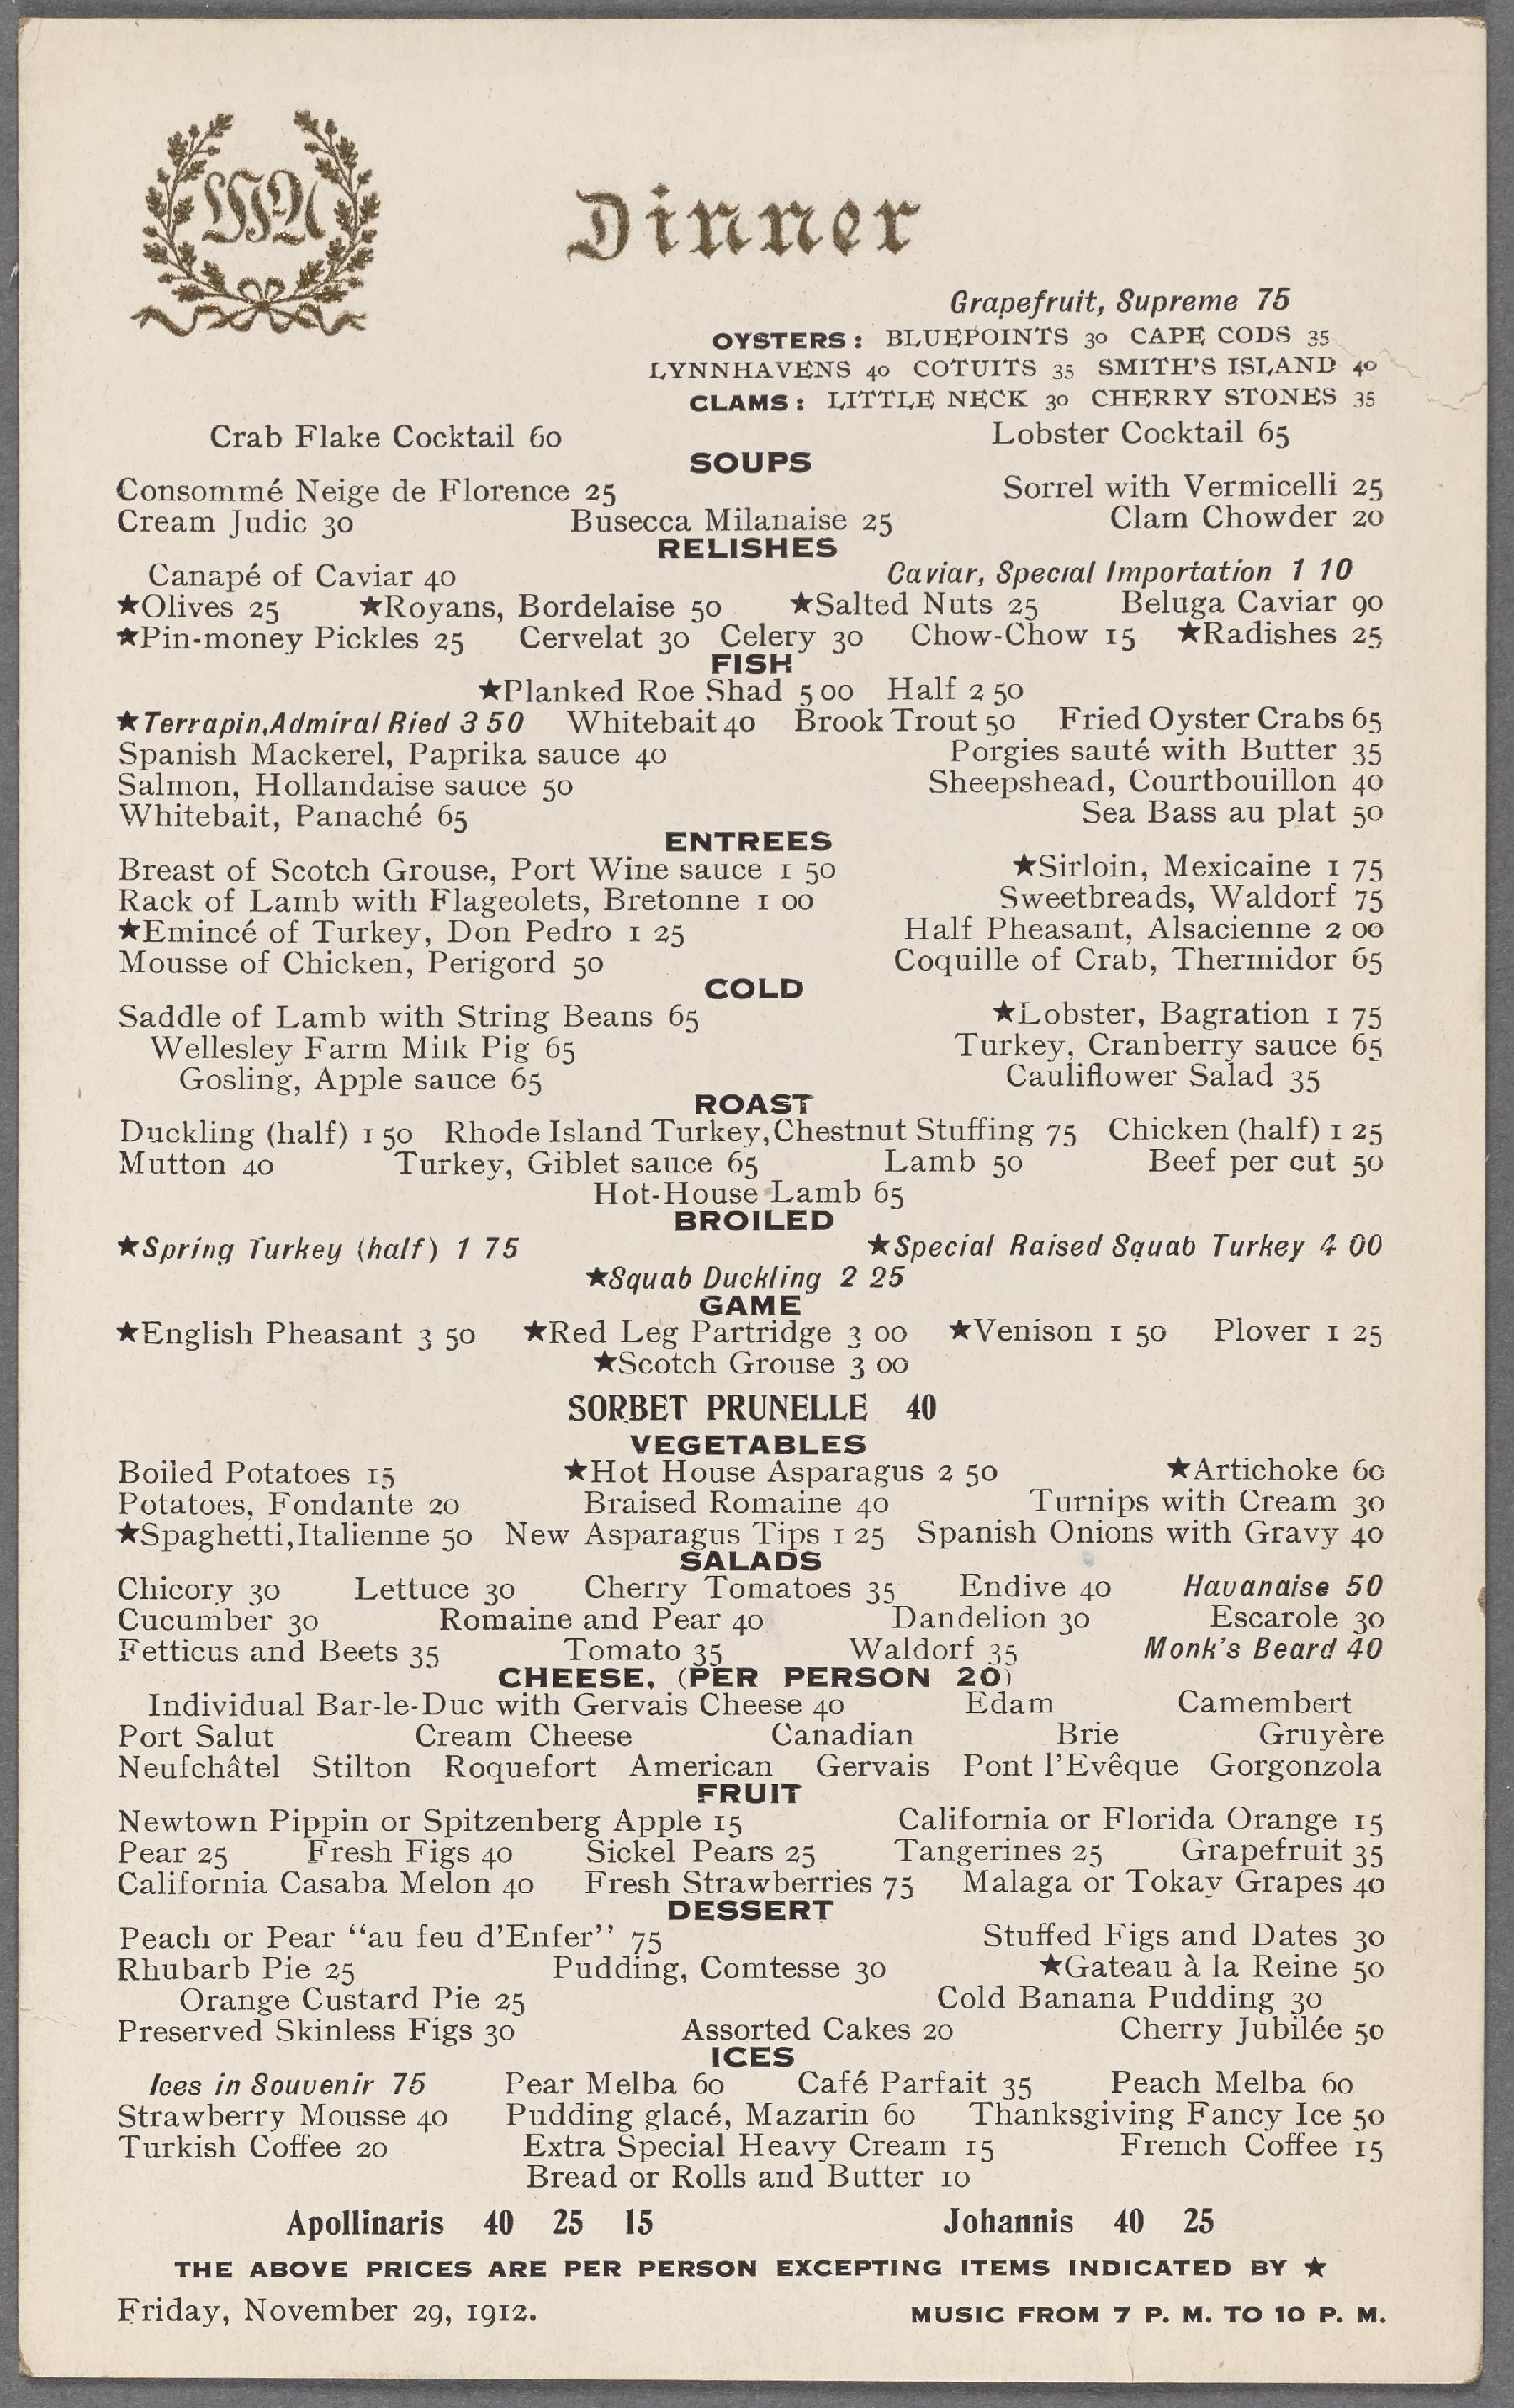 waldorf astoria dinner 1912